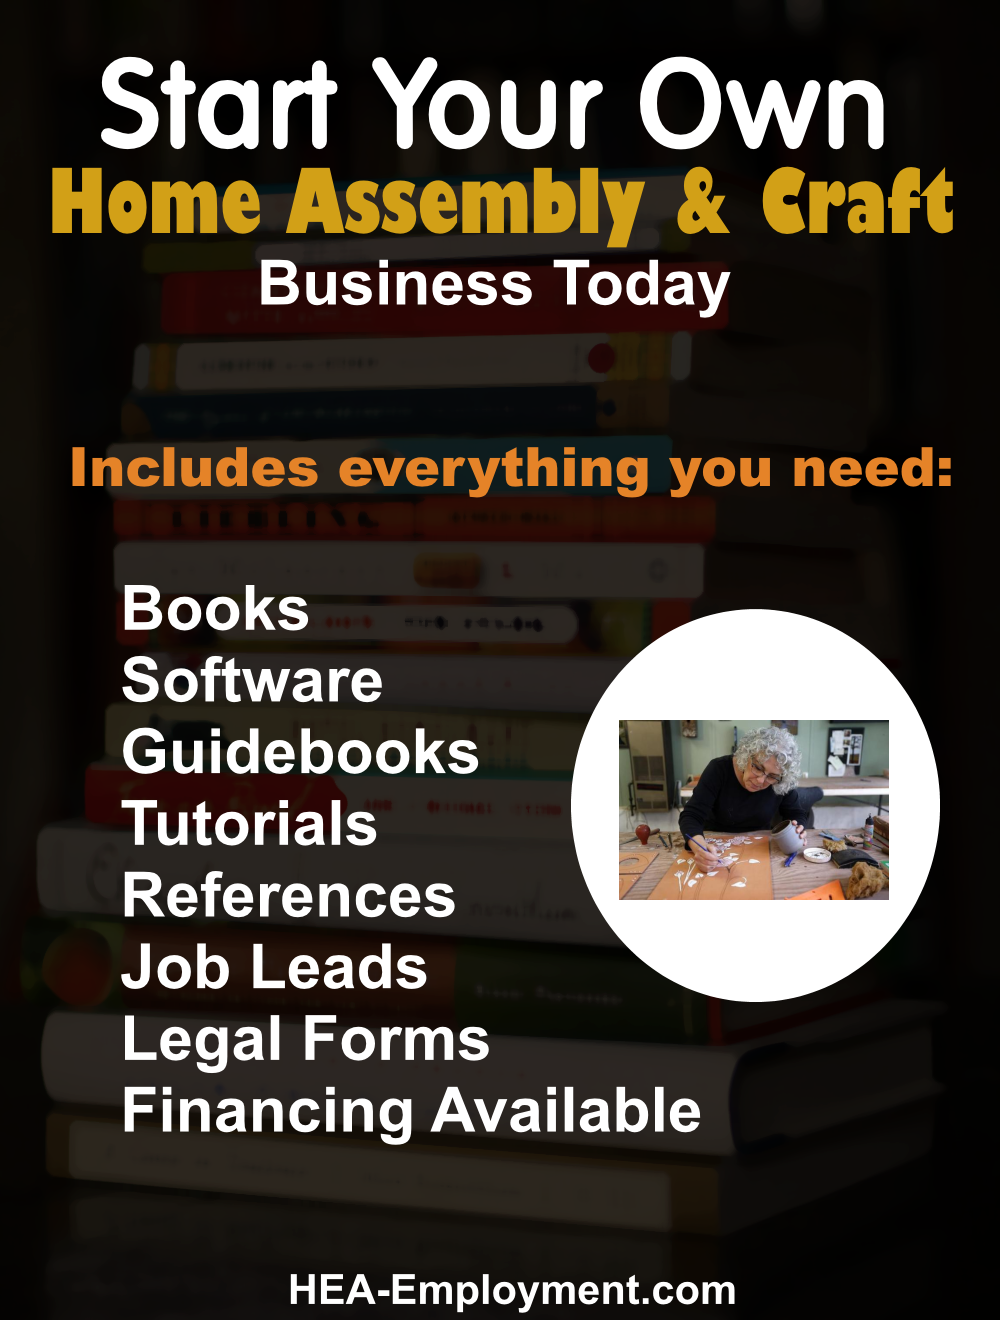 Start your own assembly and craft legitimate home based business. Fully equipped home business package with everything you need to get started. Productivity software, tutorials, guidebooks, references, manuals, tax advice and legal forms are included with each kit. Be your own boss!